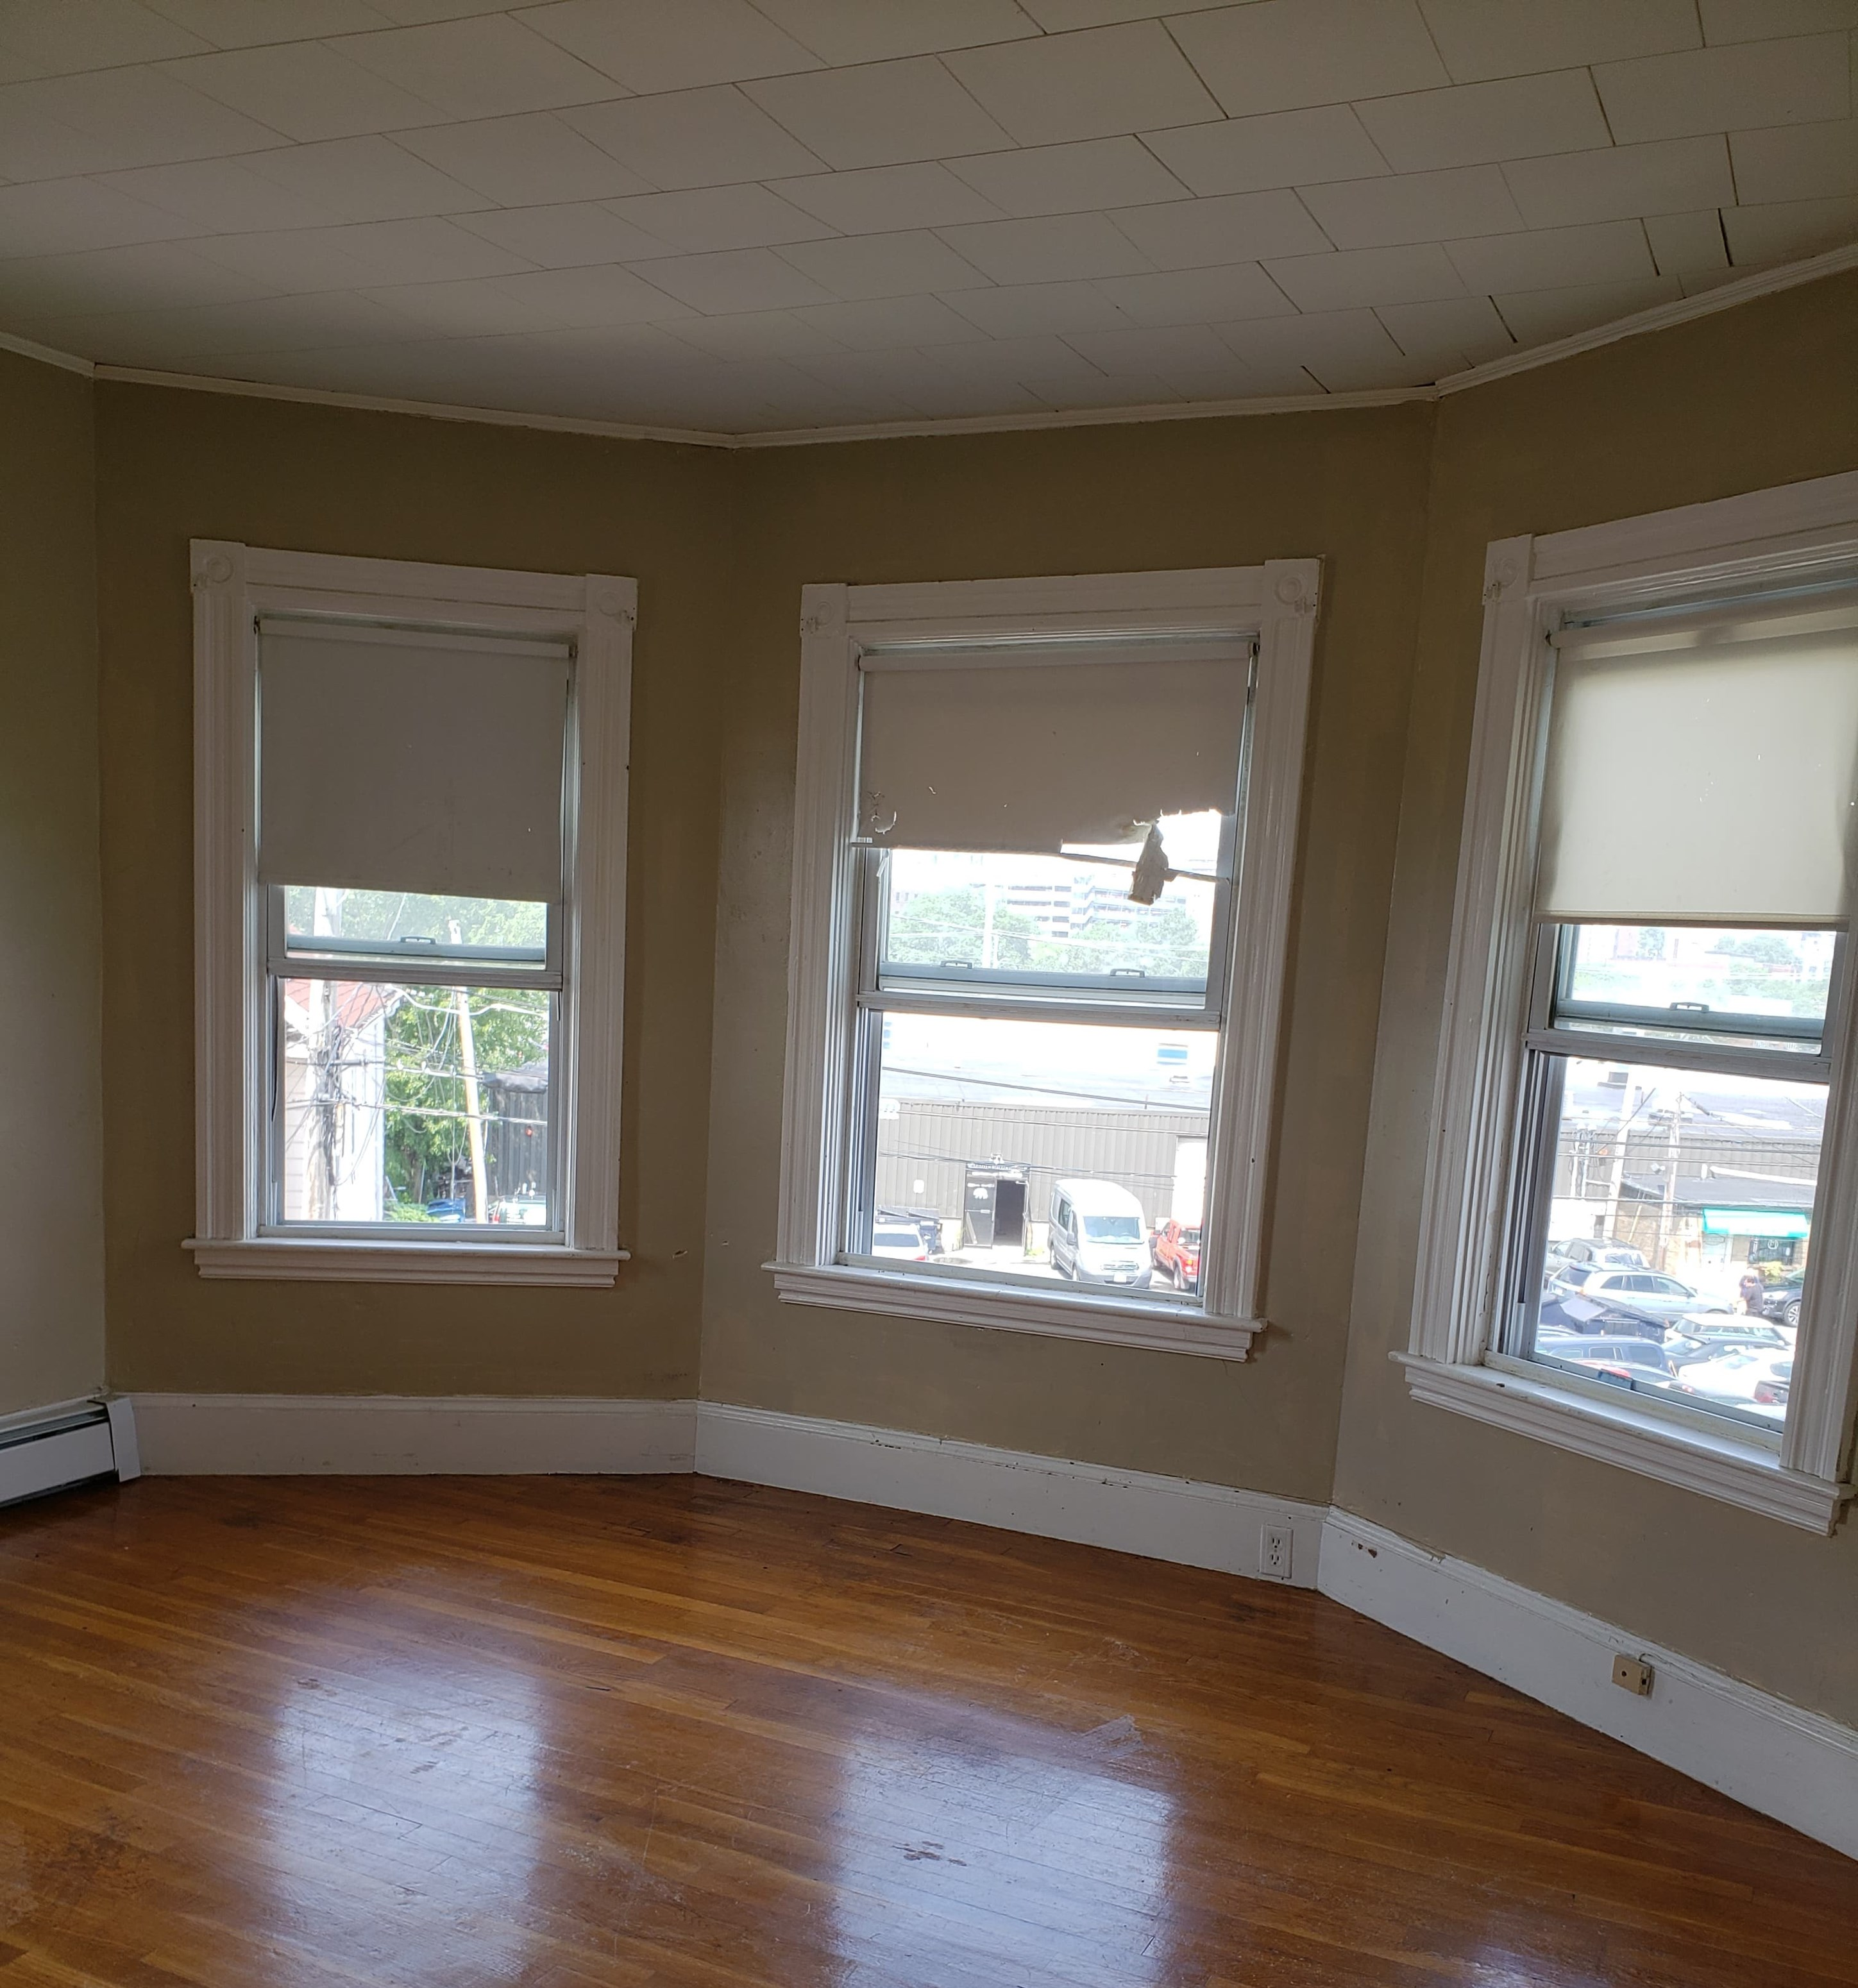 Apartment/Flats for Rent in Boston, 1BHK, 2BHK, 3BHK, 4BHK Rentals ...